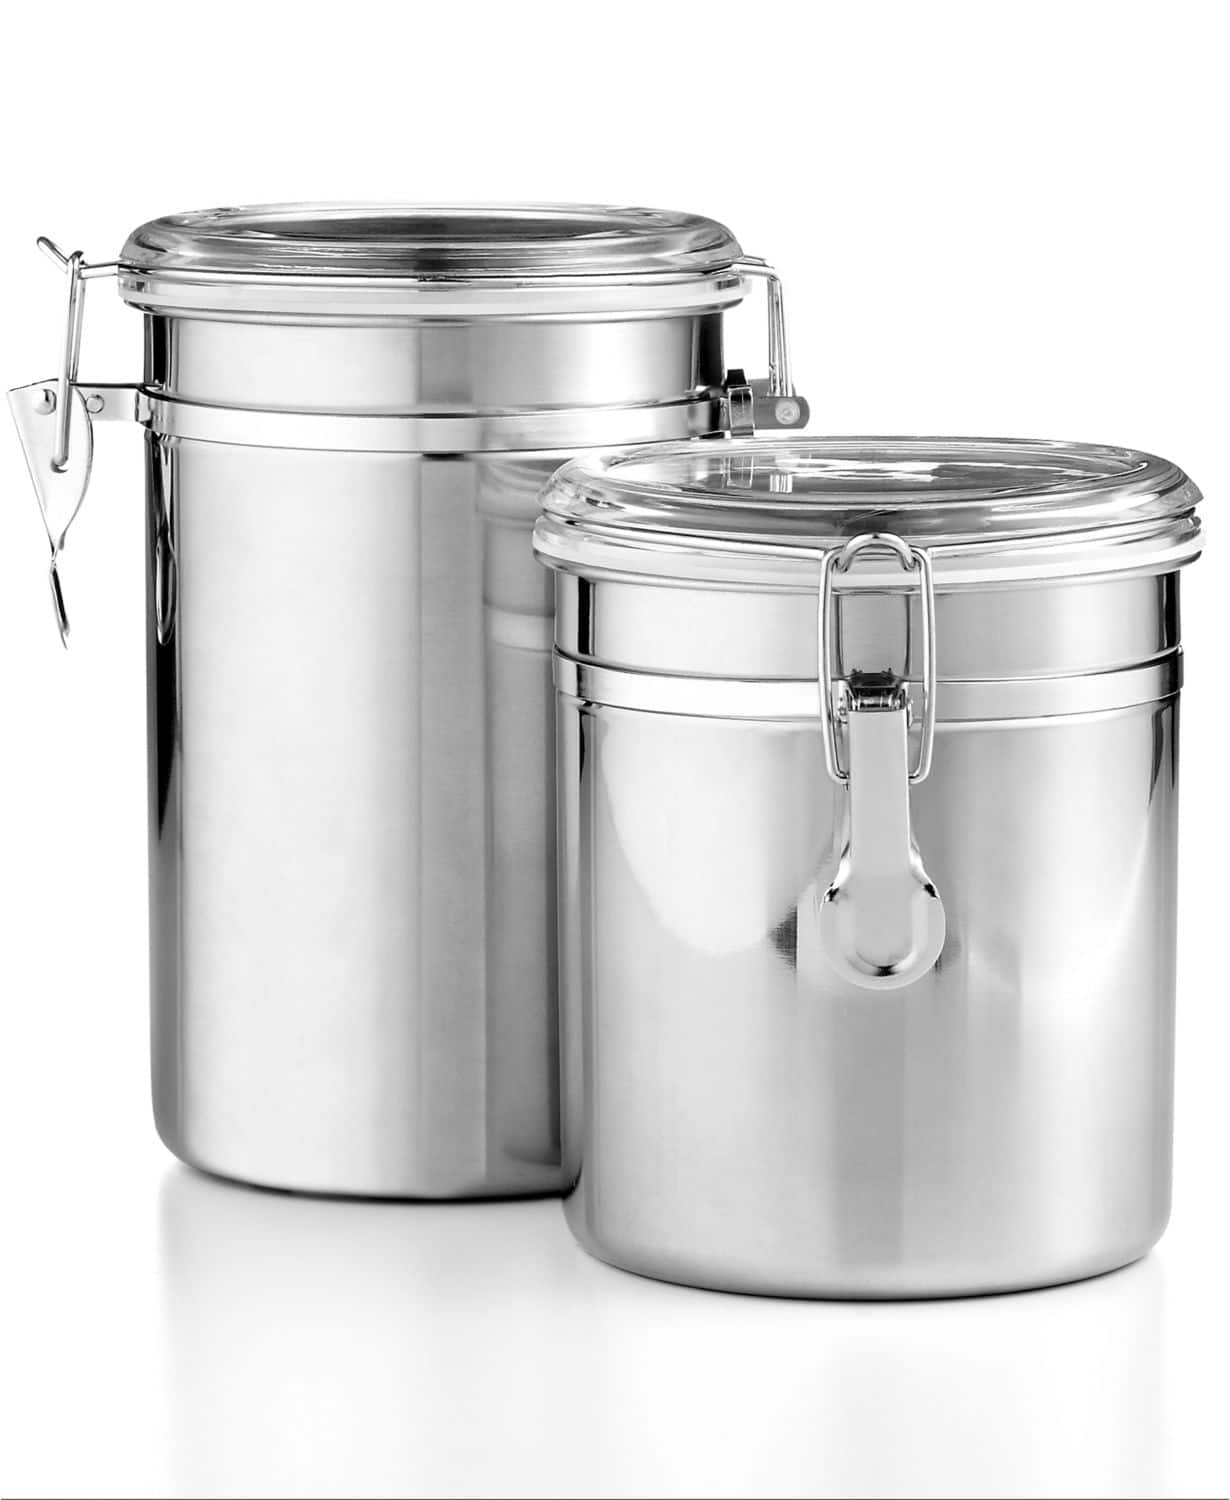 Martha Stewart Kitchen Items: Set of 2 Stainless Steel ...